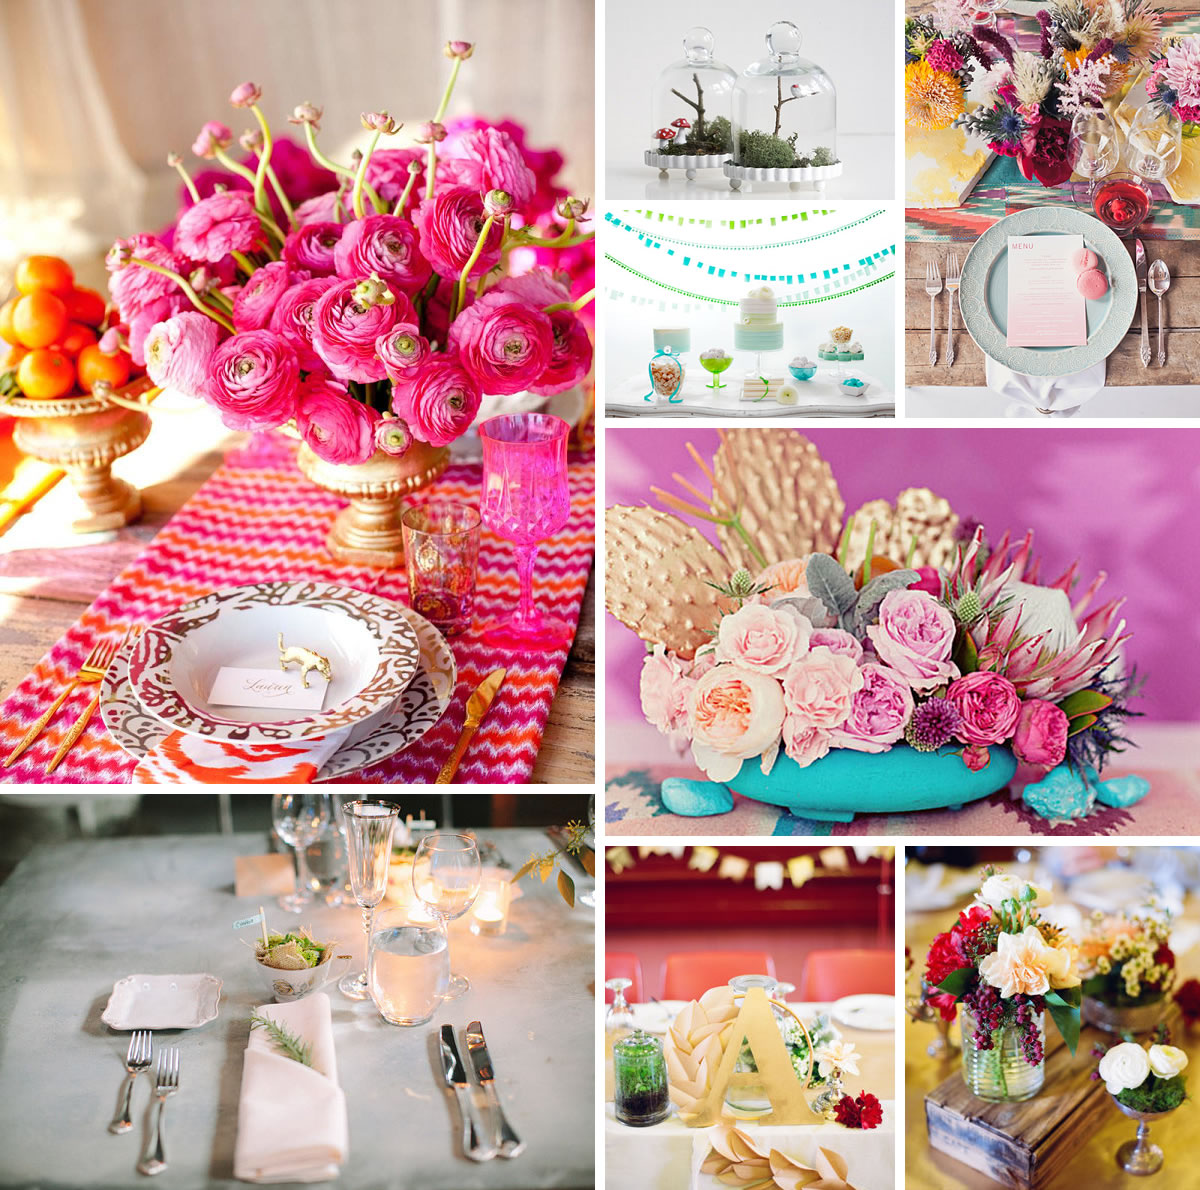 Magnificent Wedding Reception Table Decoration Ideas 1200 x 1190 · 370 kB · jpeg